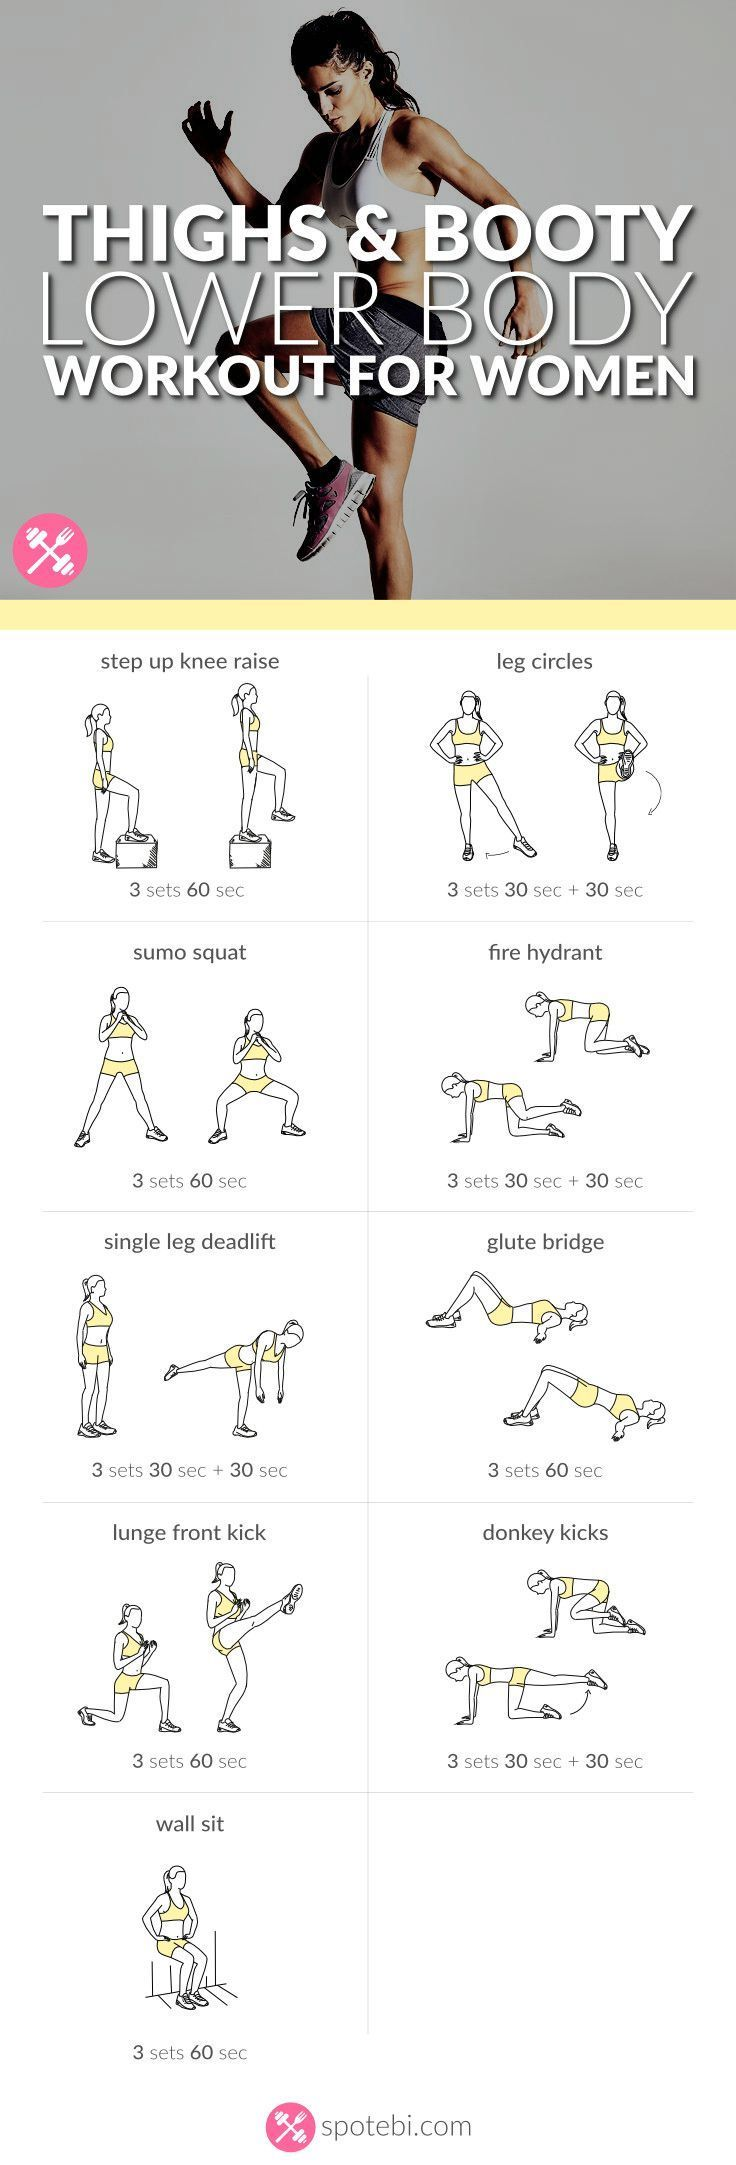 Sculpt your glutes, hips, hamstrings, quads and calves with this lower body workout. A routine designed to give you slim thighs, a rounder booty and legs for days! http://www.spotebi.com/workout-routines/lower-body-workout-thighs-booty-legs/: